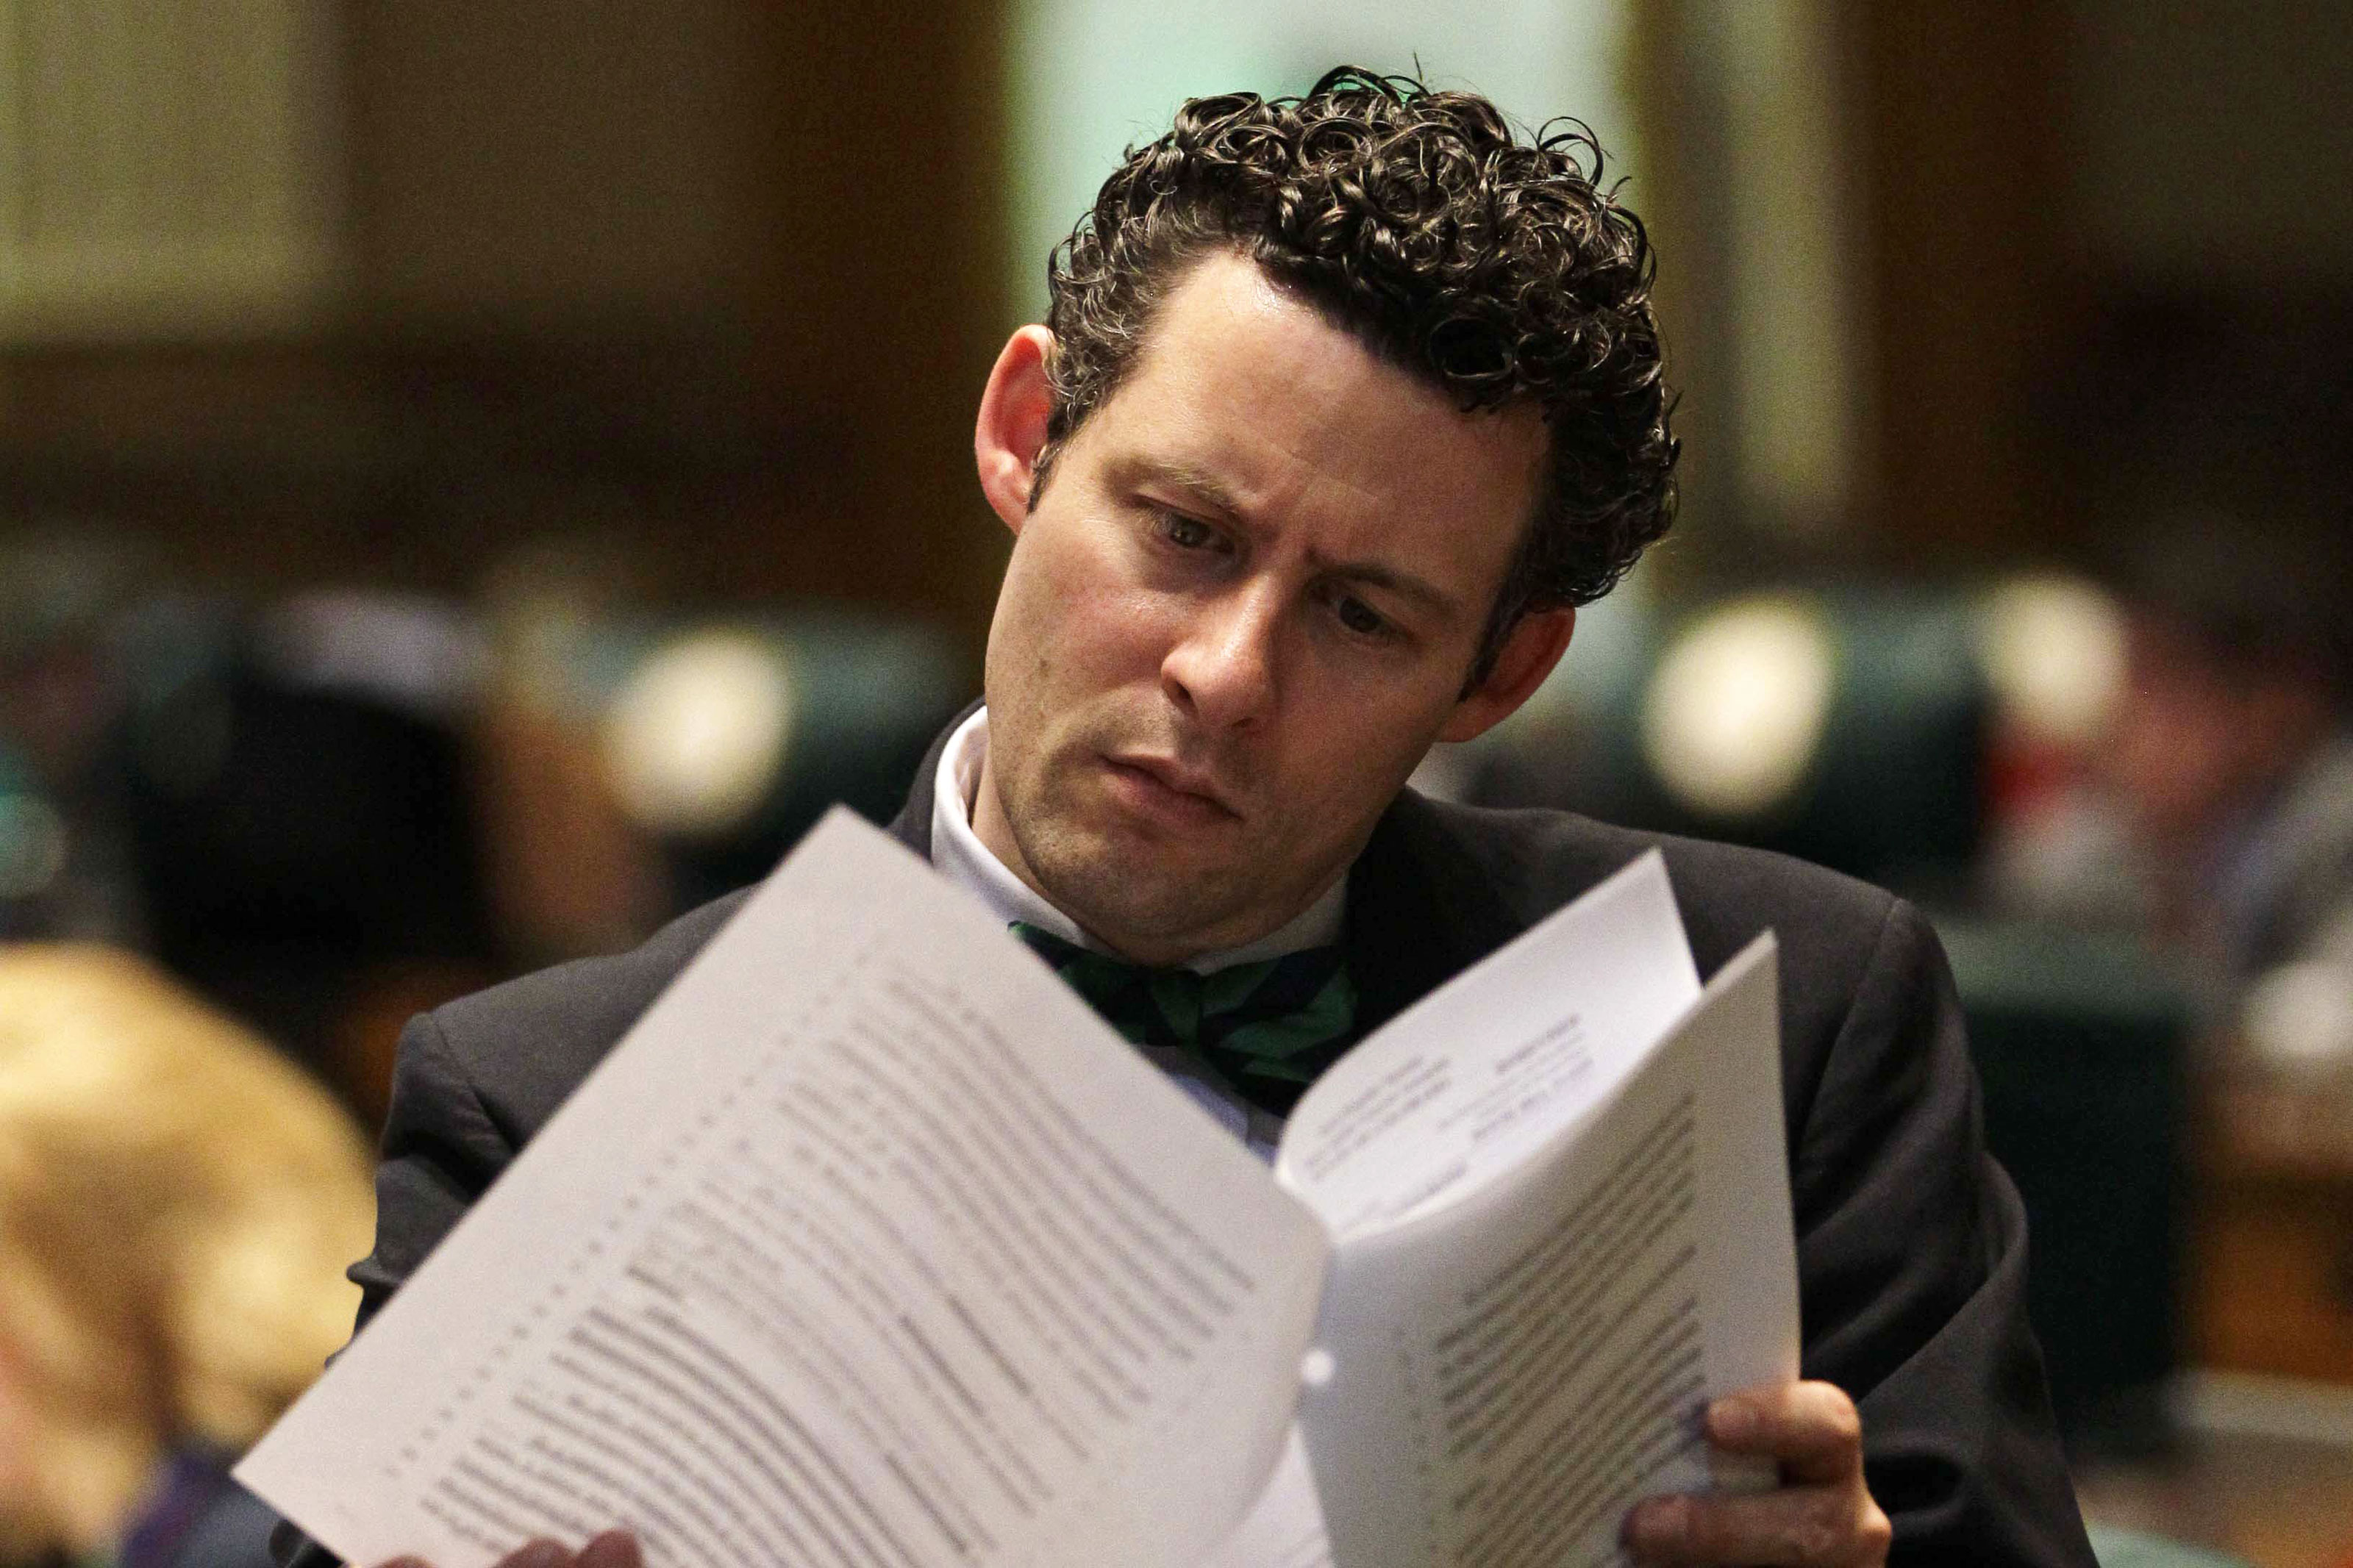 <p>Colorado State Rep. Justin Everett, R-Littleton, reads paperwork during a debate period inside the Legislature, March 15, 2013.</p>